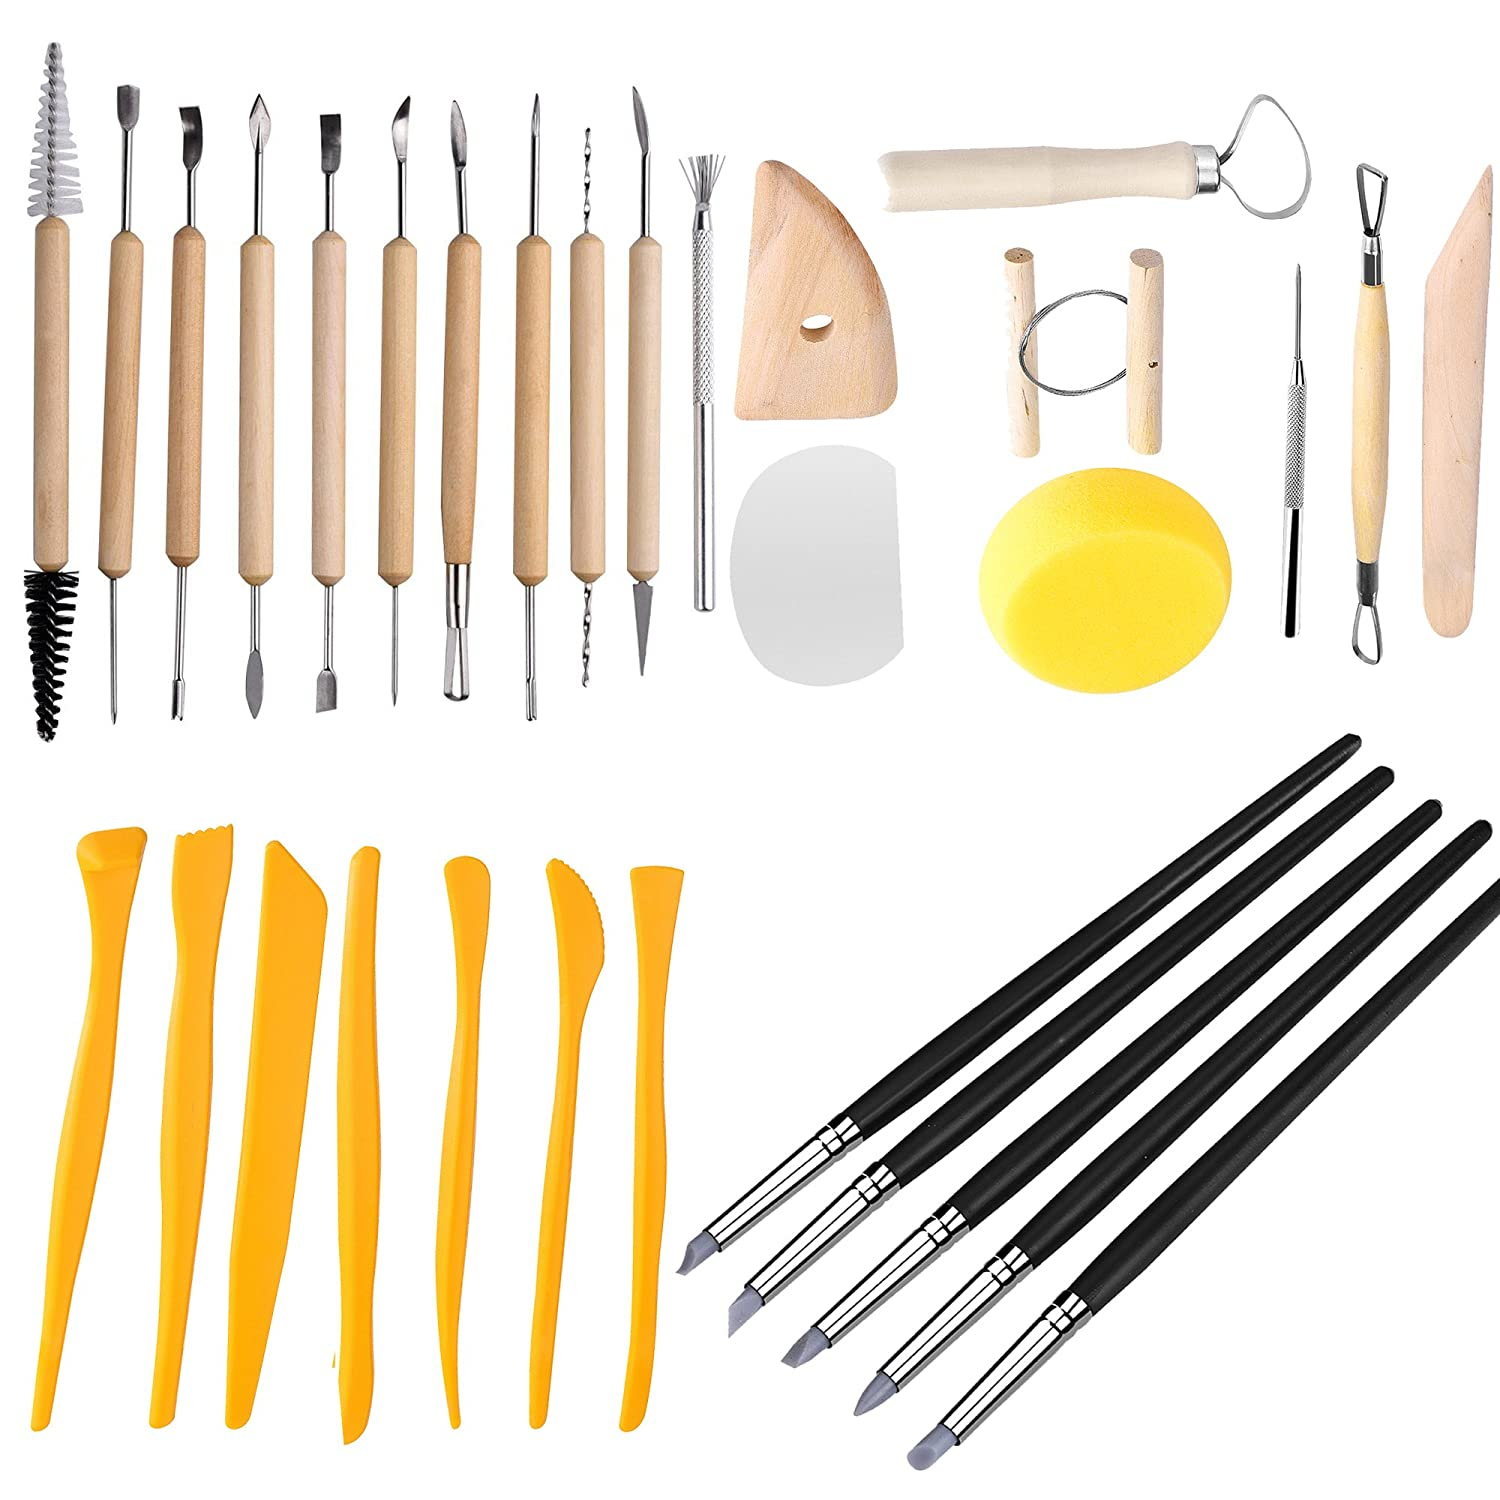 Clay Sculpting Tools - Pottery Sculpture Modeling/Carving Tool 31 PCS Set for Ceramics Beginners and Professional Art Crafts Newever 4336842043